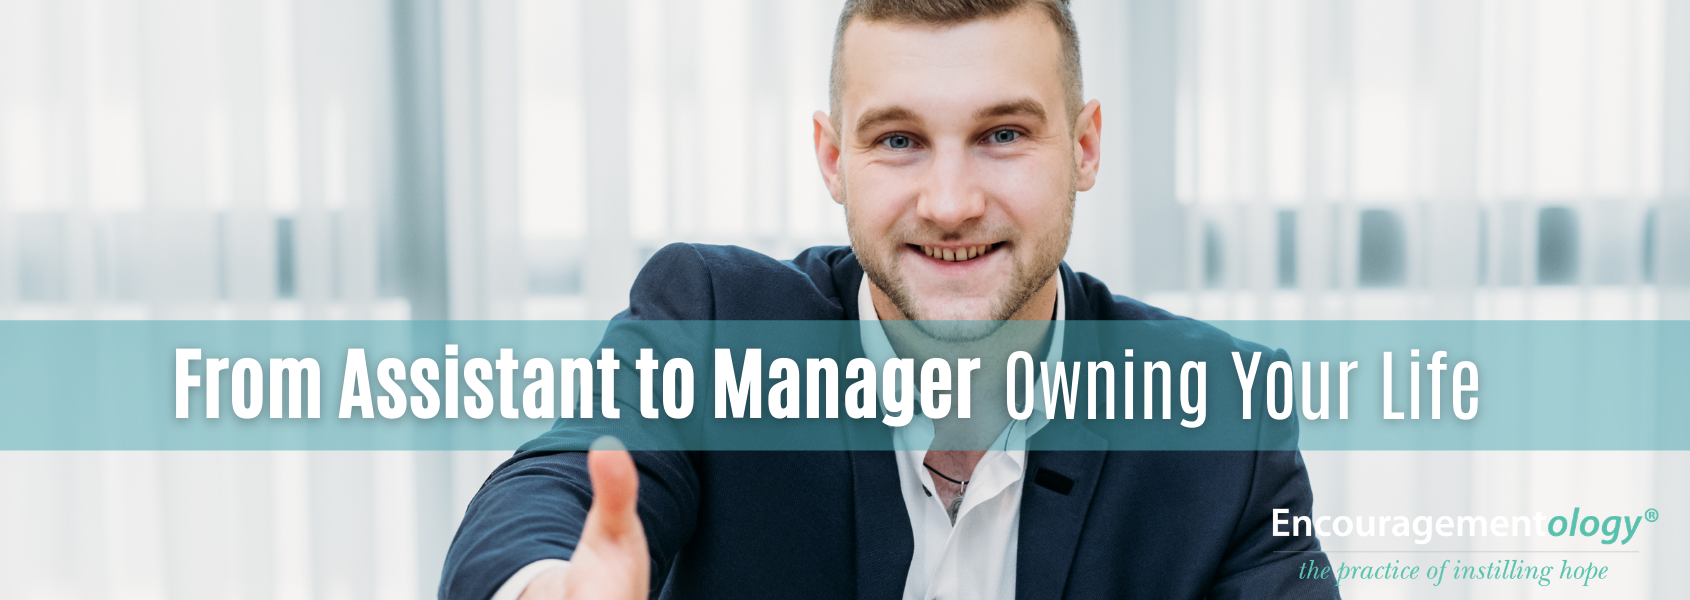 From Assistant to Manager, Owning Your Life